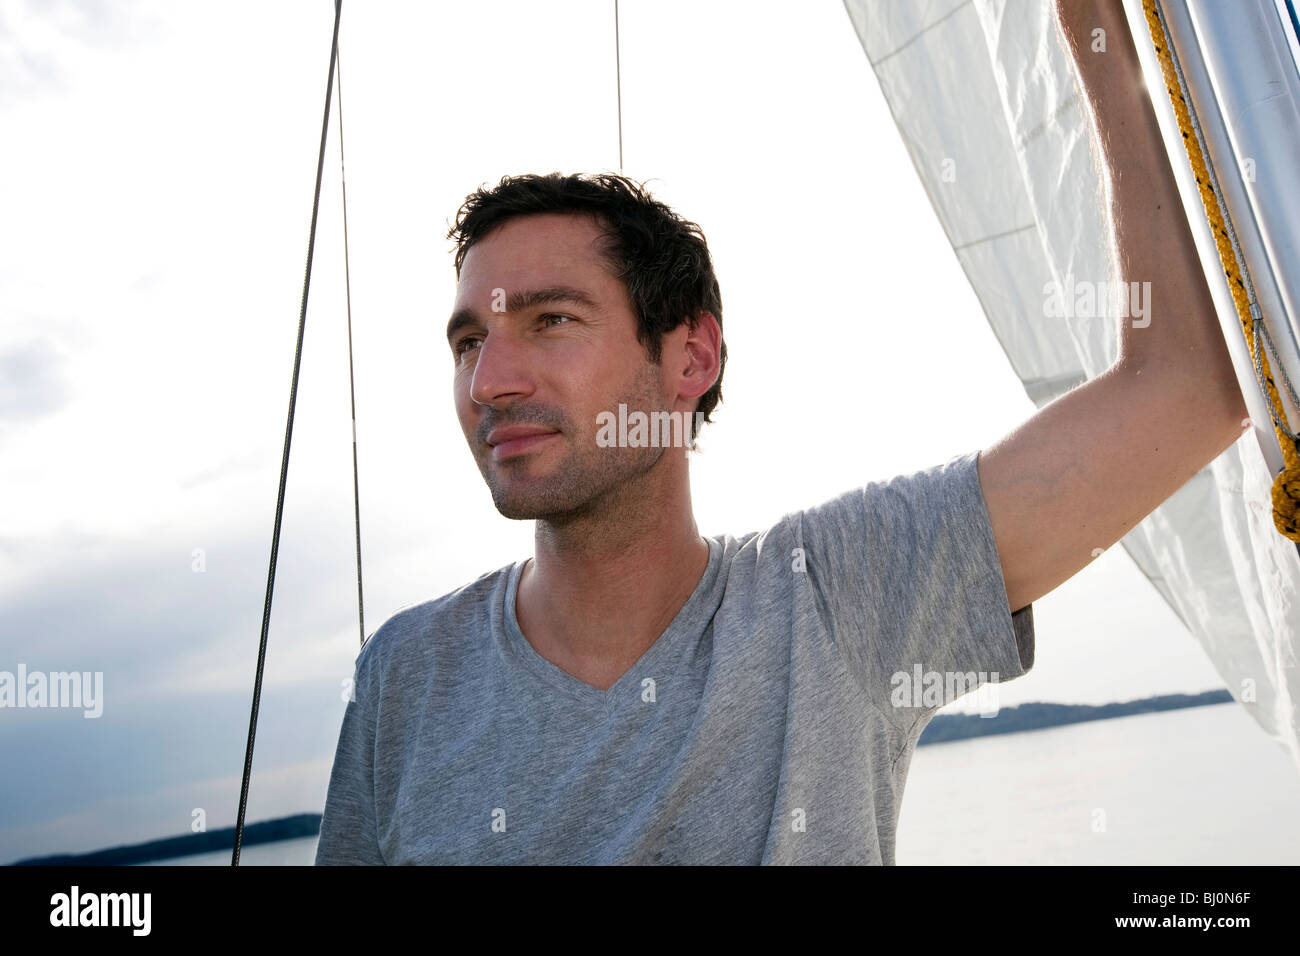 portrait of man on sailing ship - Stock Image